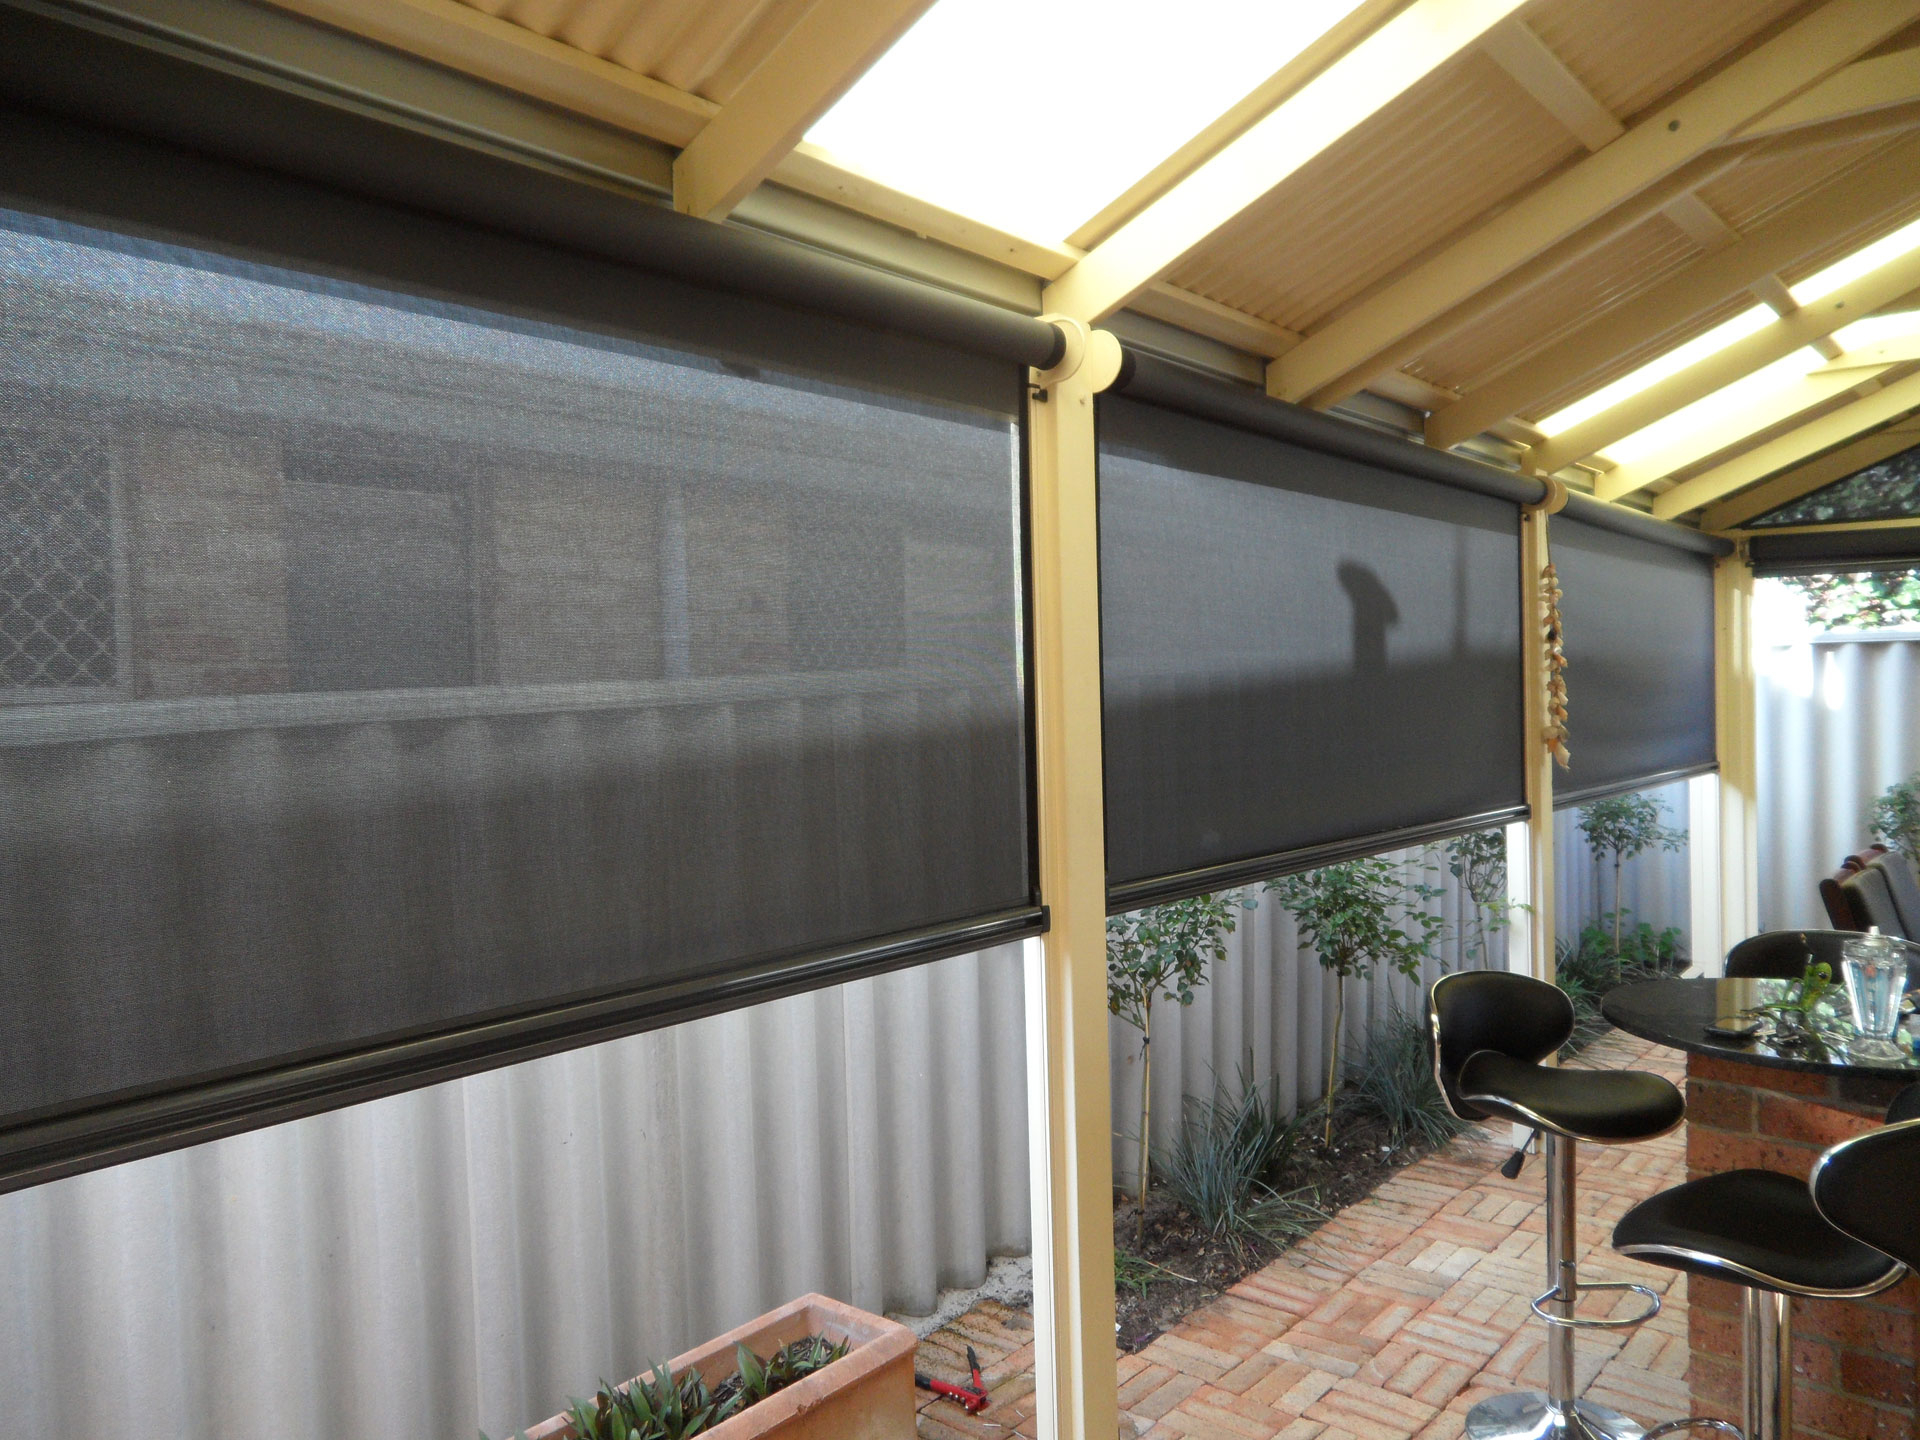 Ziptrak Outdoor Blinds Perth Fast Metro Installation throughout dimensions 1920 X 1440